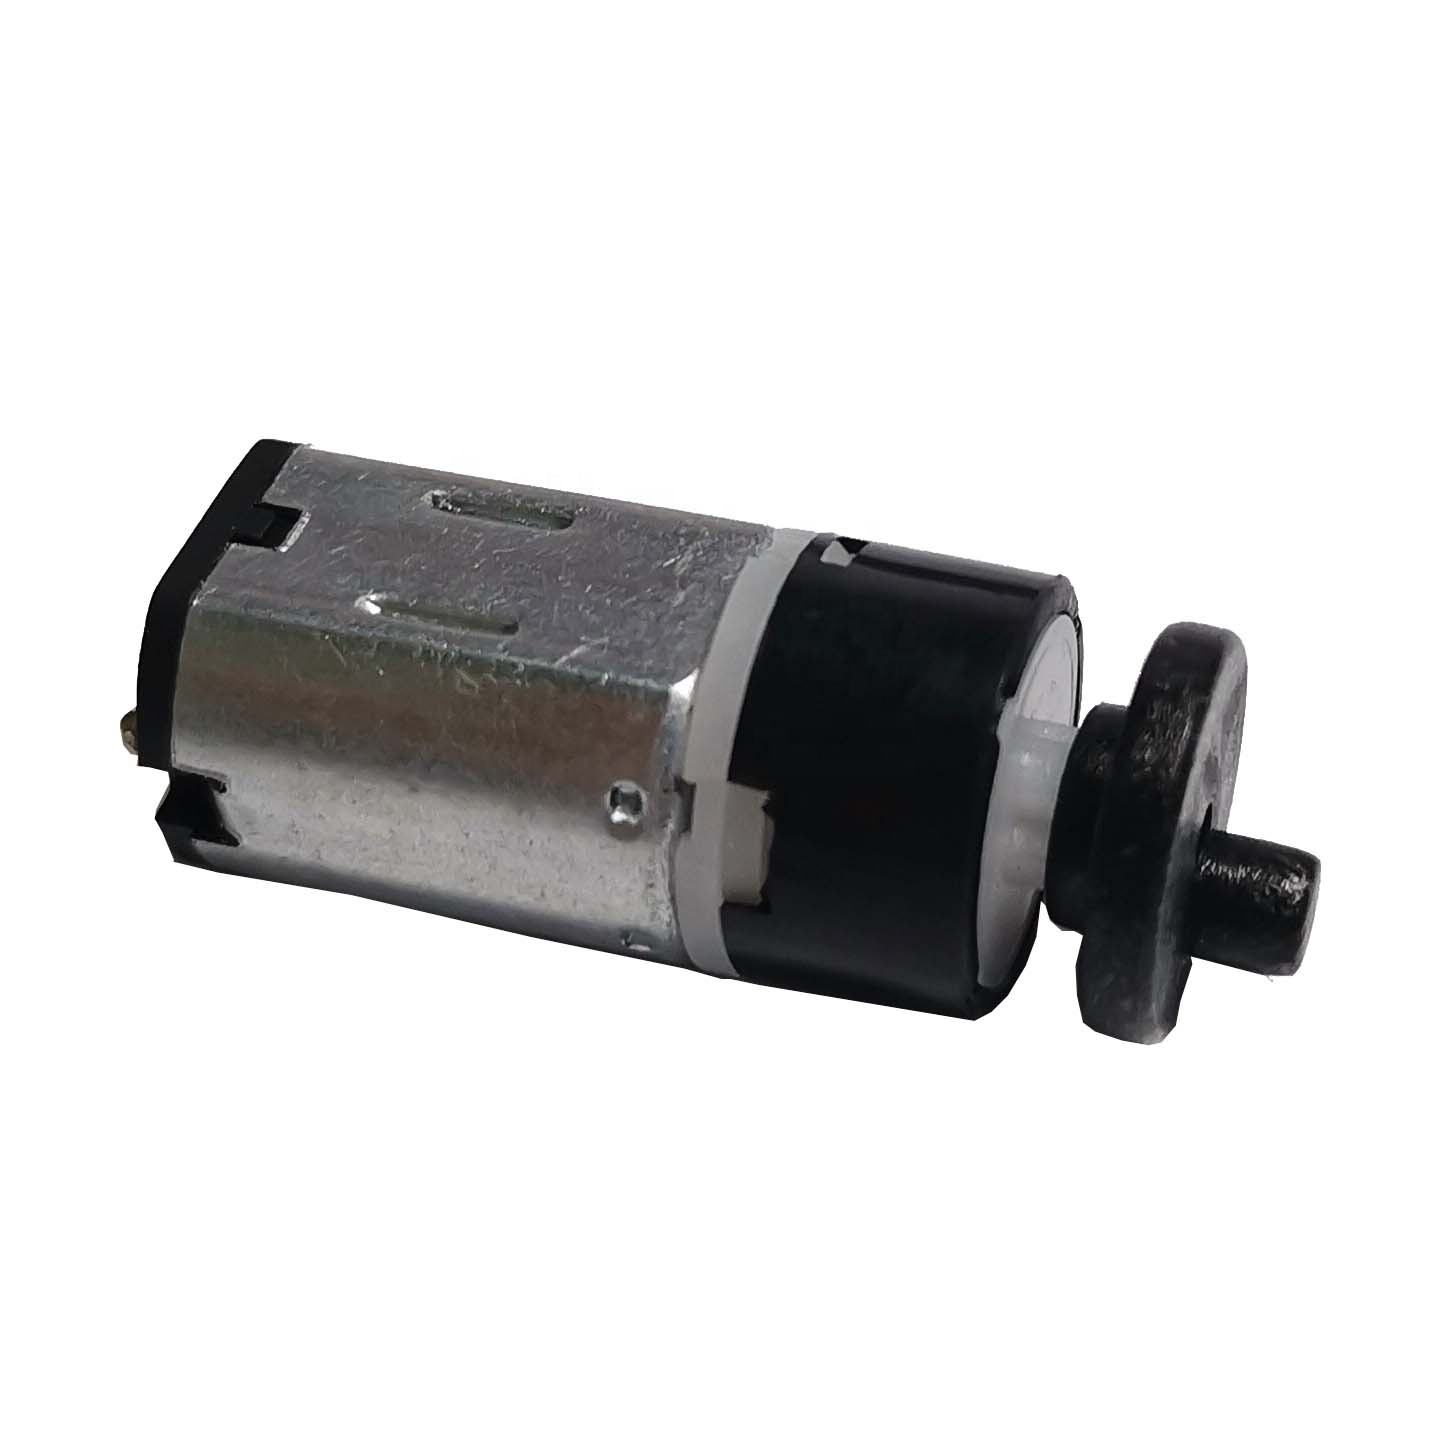 n20 automotive door lock dc motor 6v plastic gear